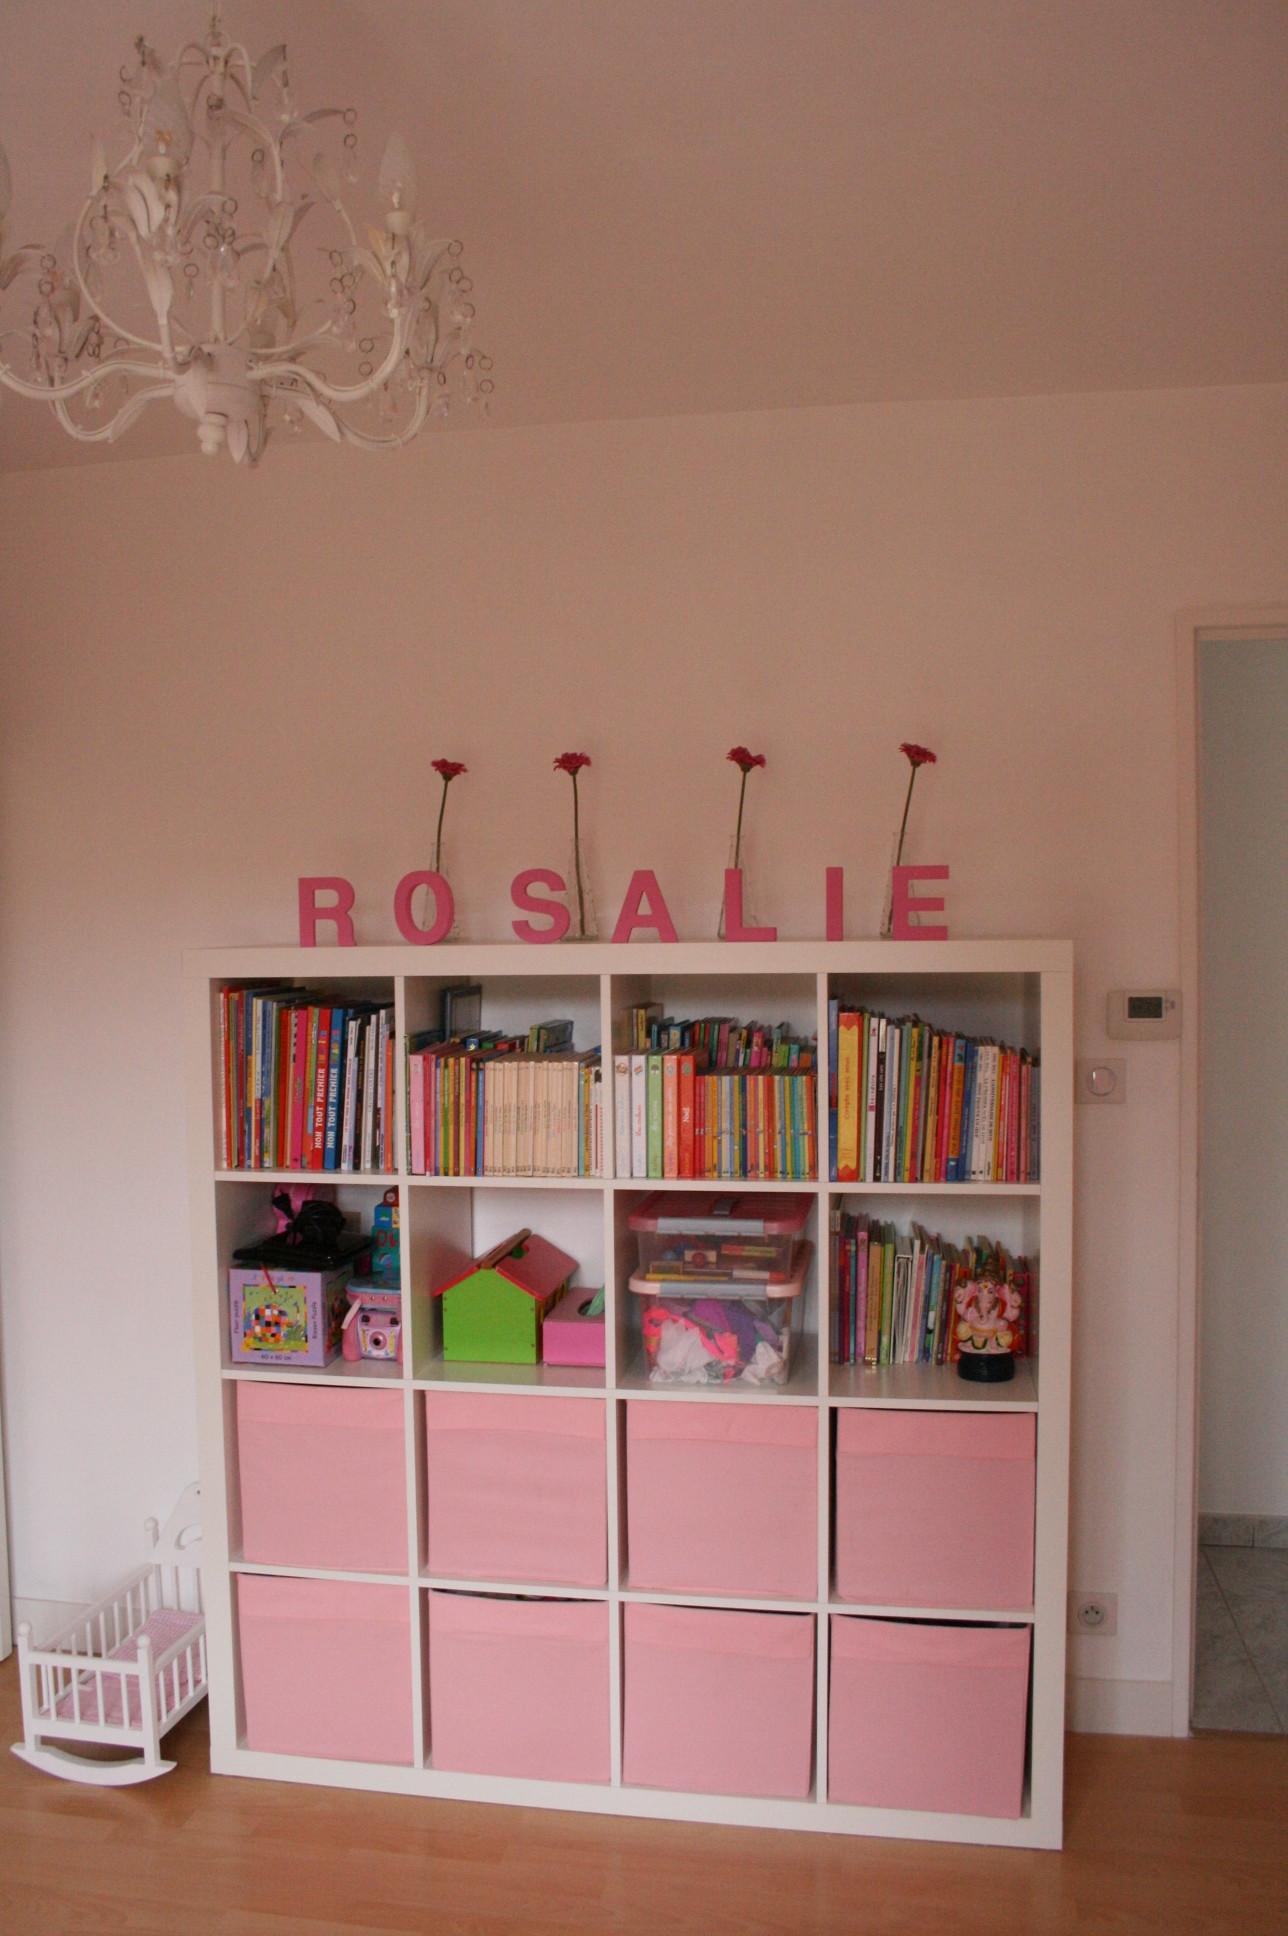 chambre d 39 enfant rosalie la vie en rose le coin rangement jeux d co. Black Bedroom Furniture Sets. Home Design Ideas